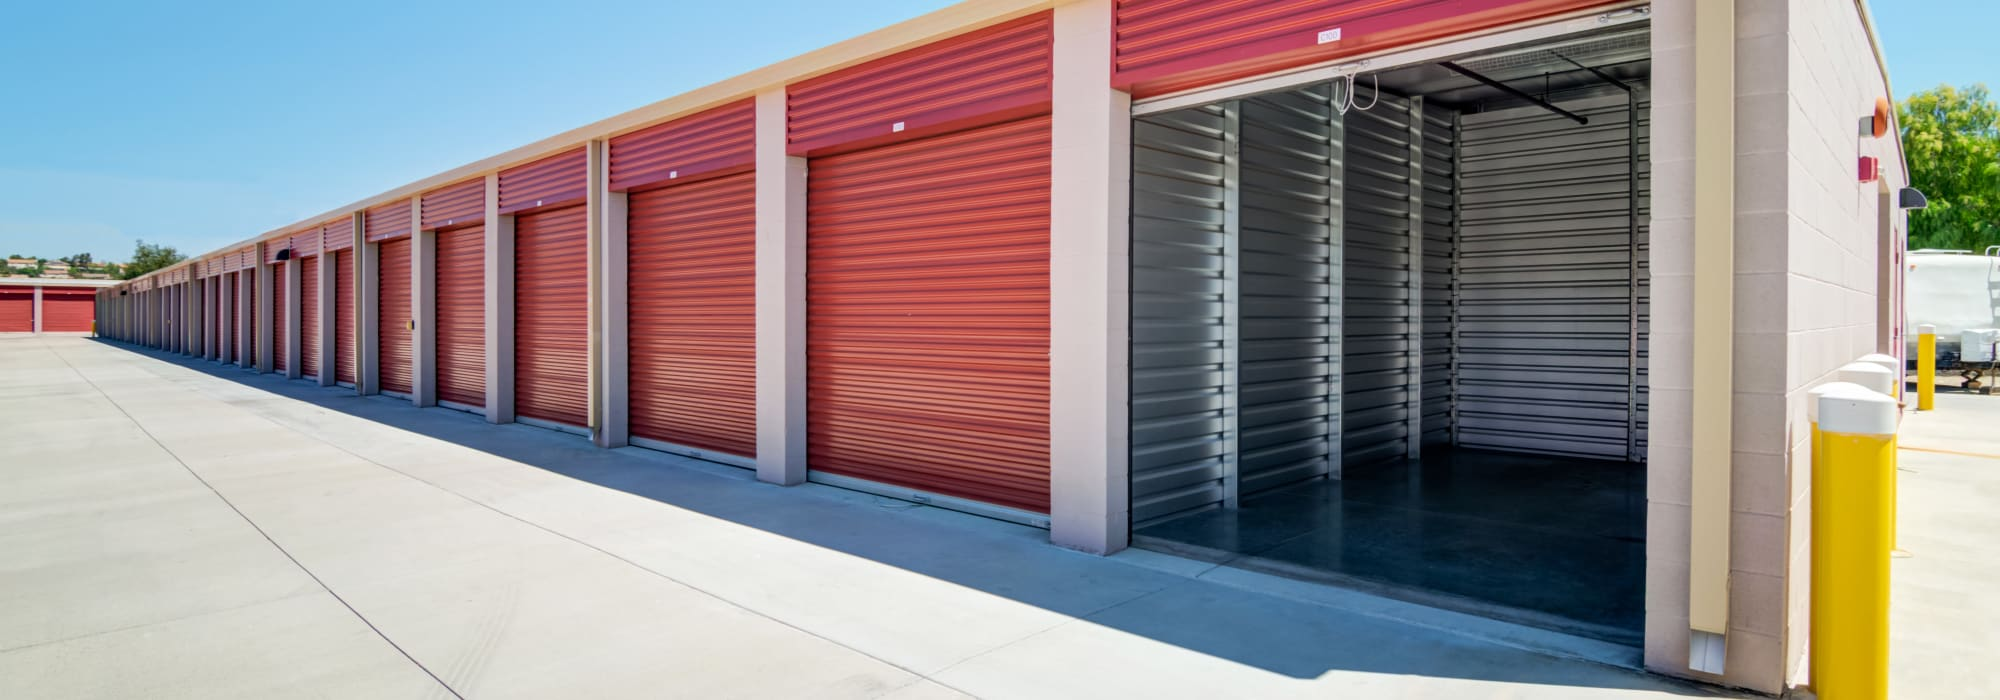 Outdoor units at Butterfield Ranch Self Storage in Temecula, California